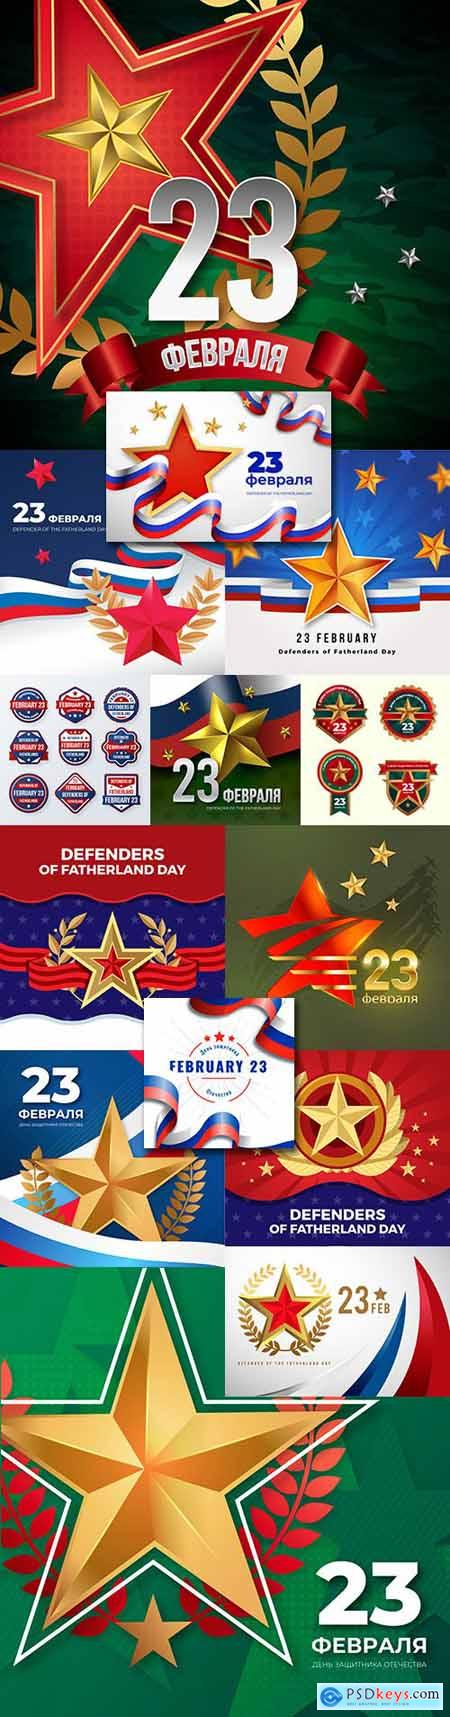 February 23 Defender of Fatherland day illustration flat design 3